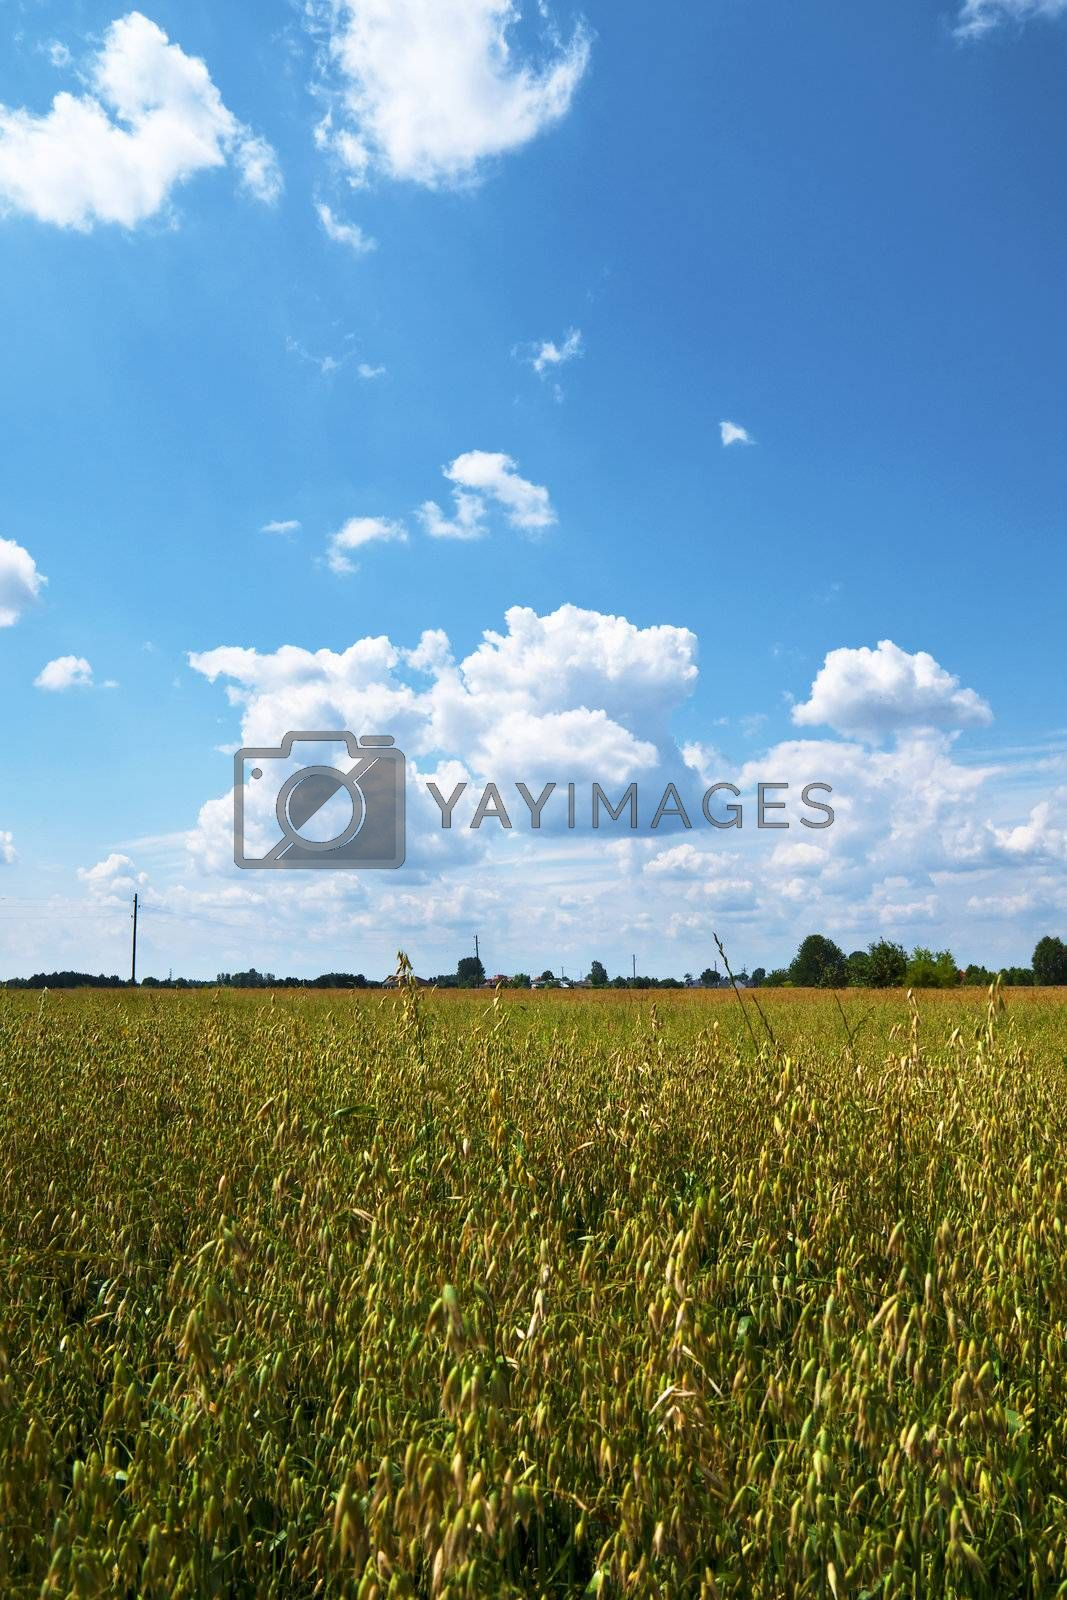 Grain field, sky and distant trees.